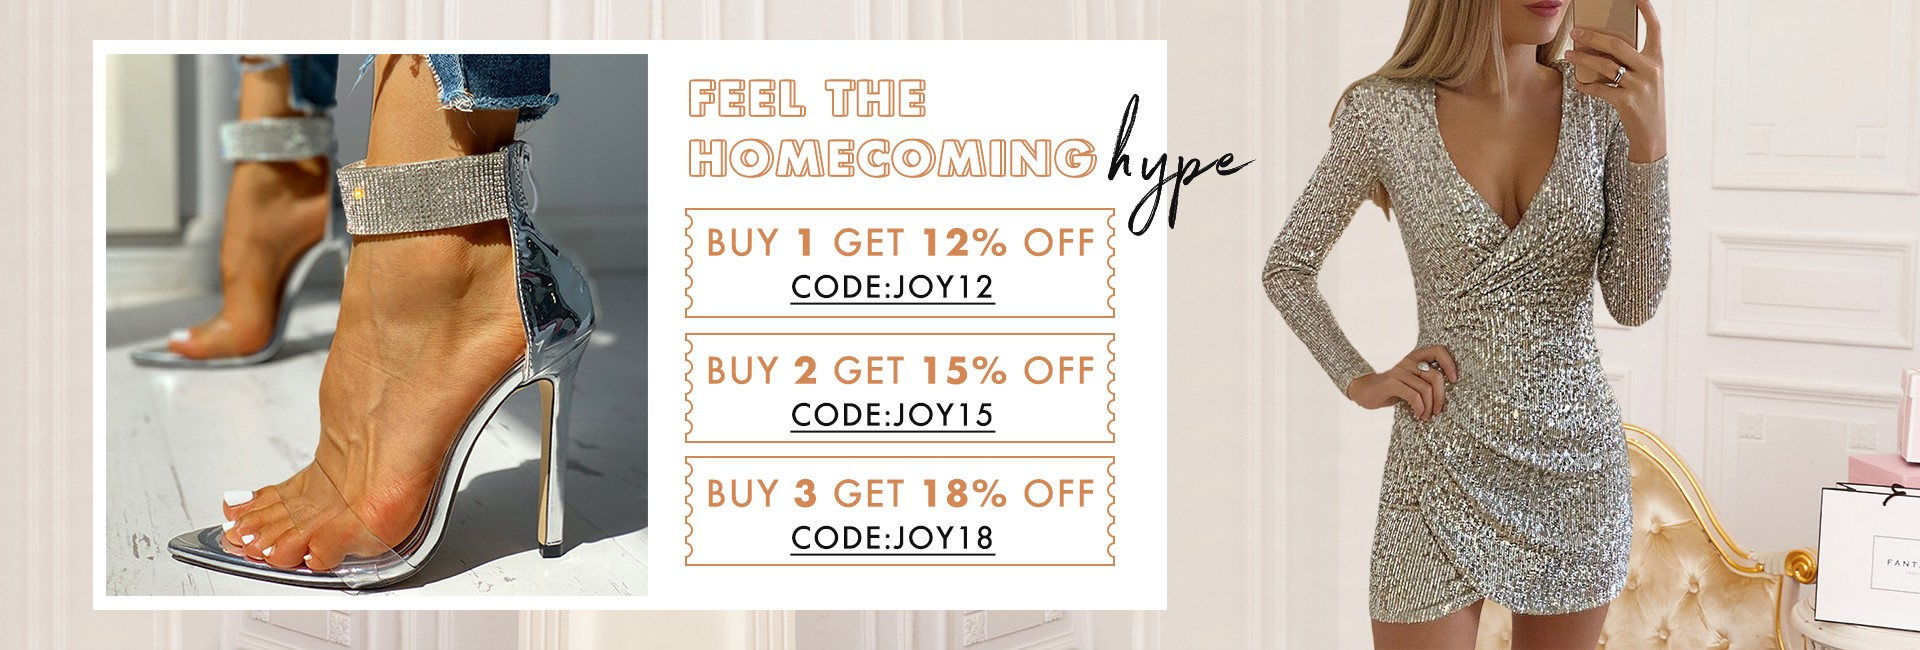 Feel the HOMECOMING hype